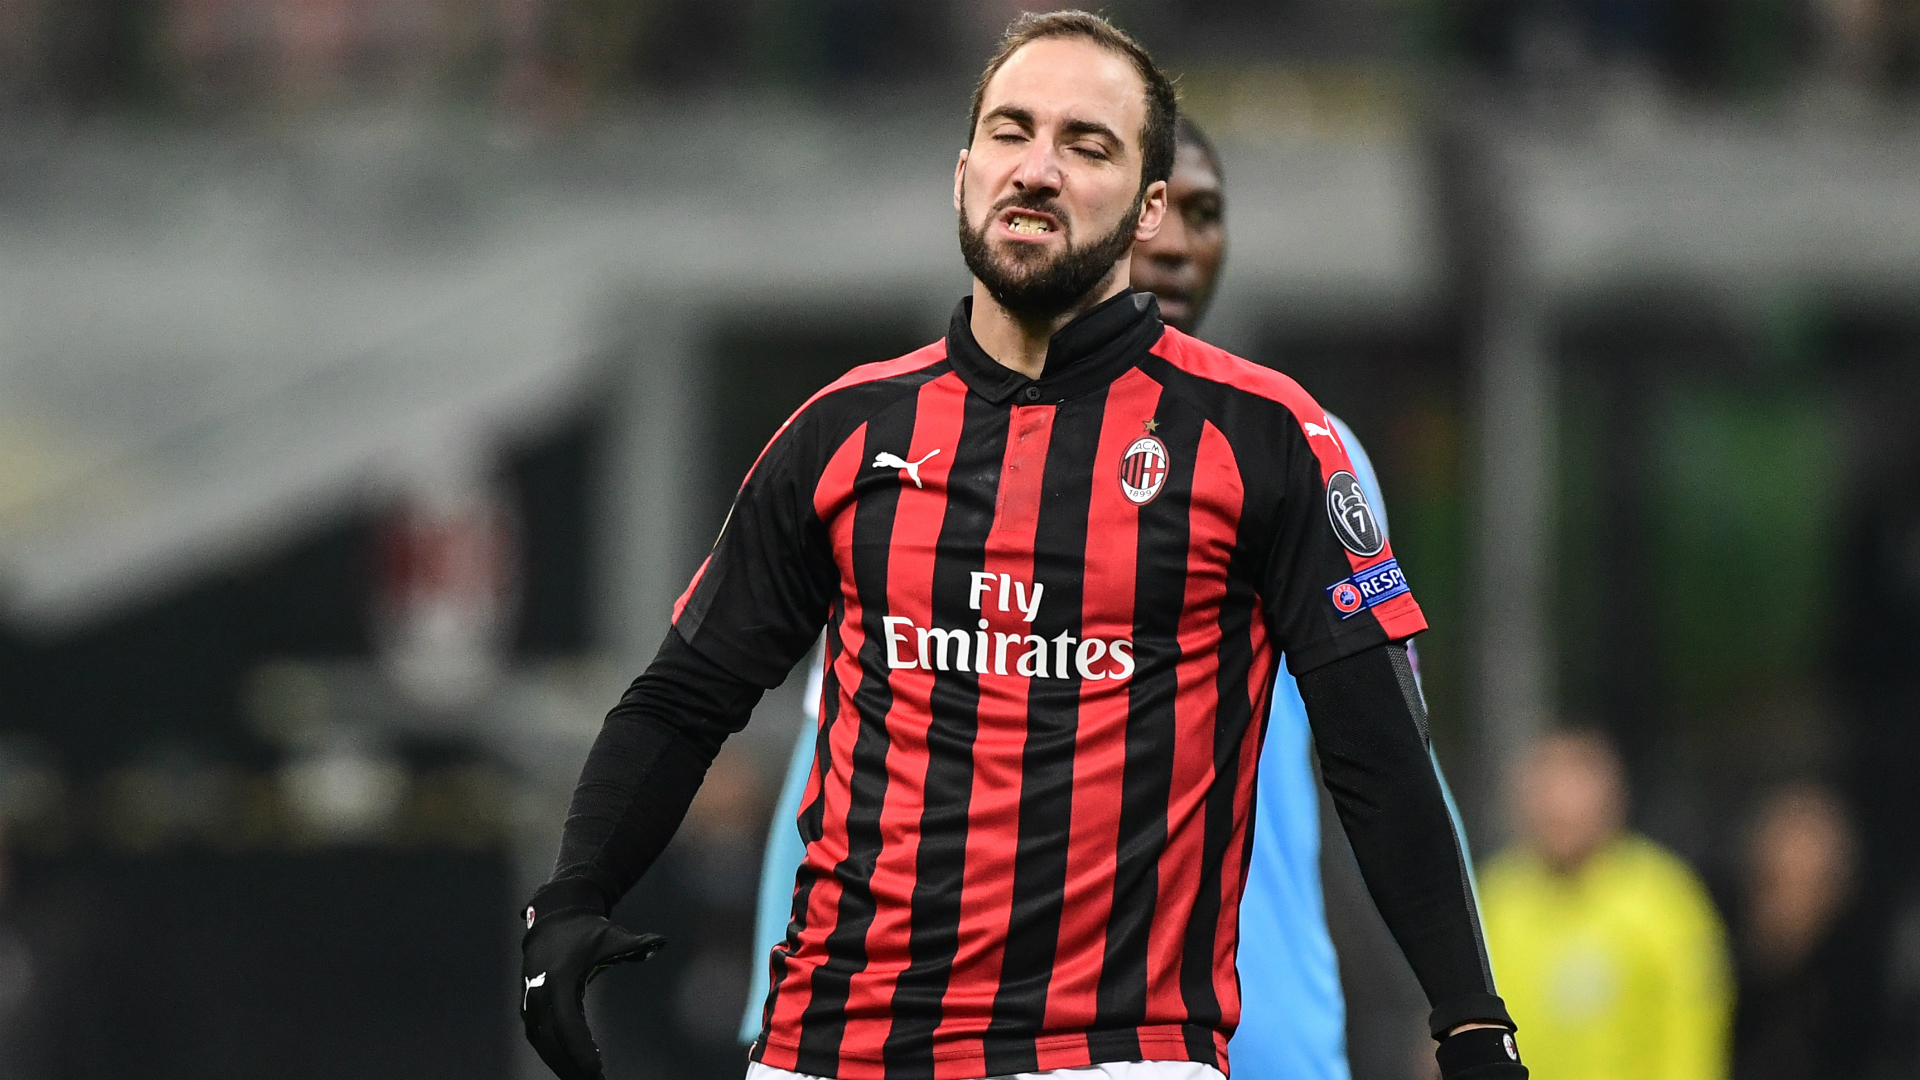 AC Milan's Higuain poised for Chelsea move